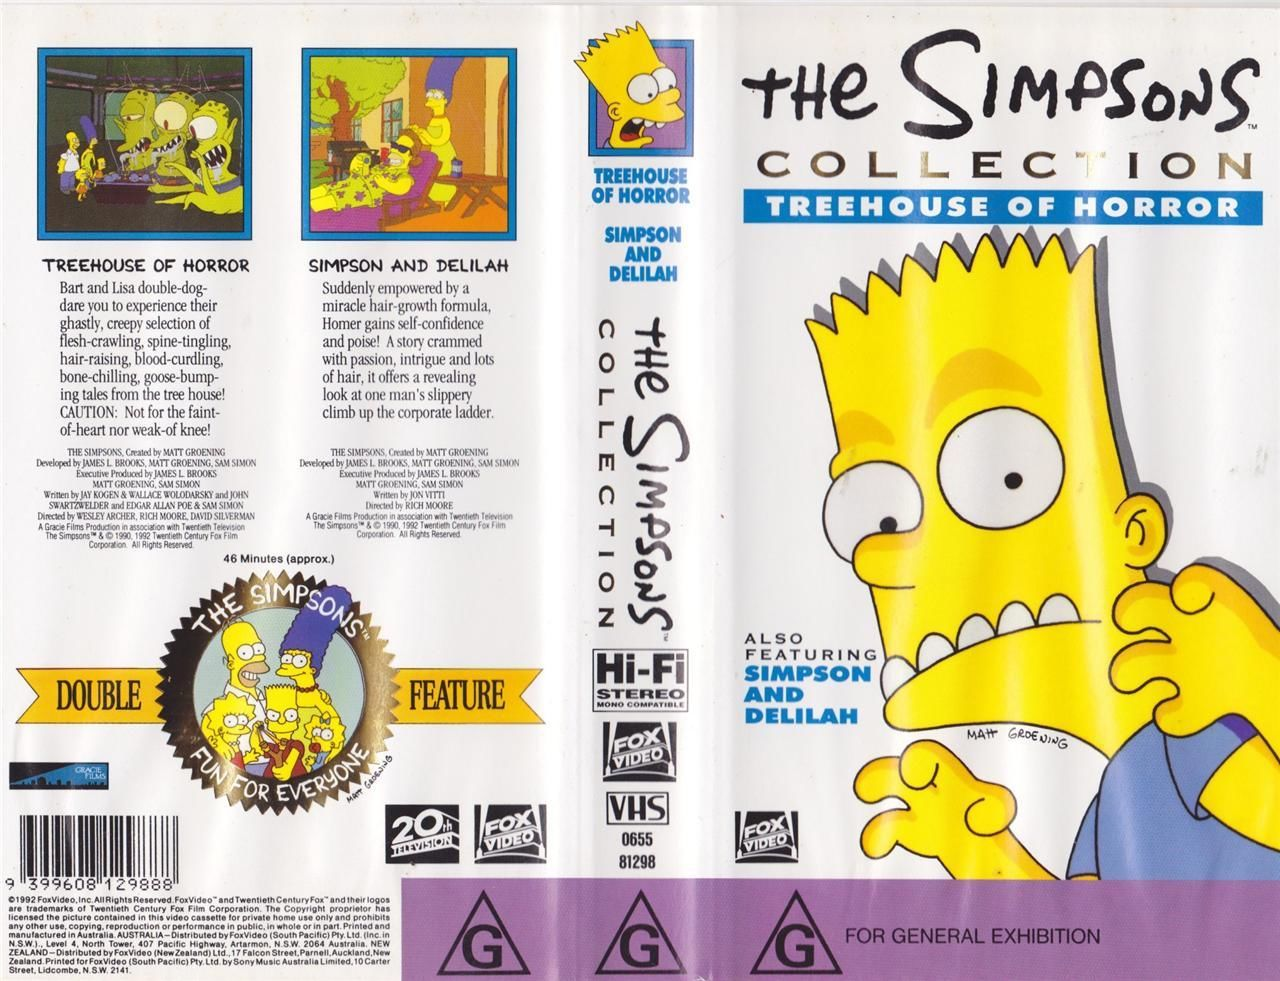 The Simpsons Collection Treehouse of Horror (Australia).JPG